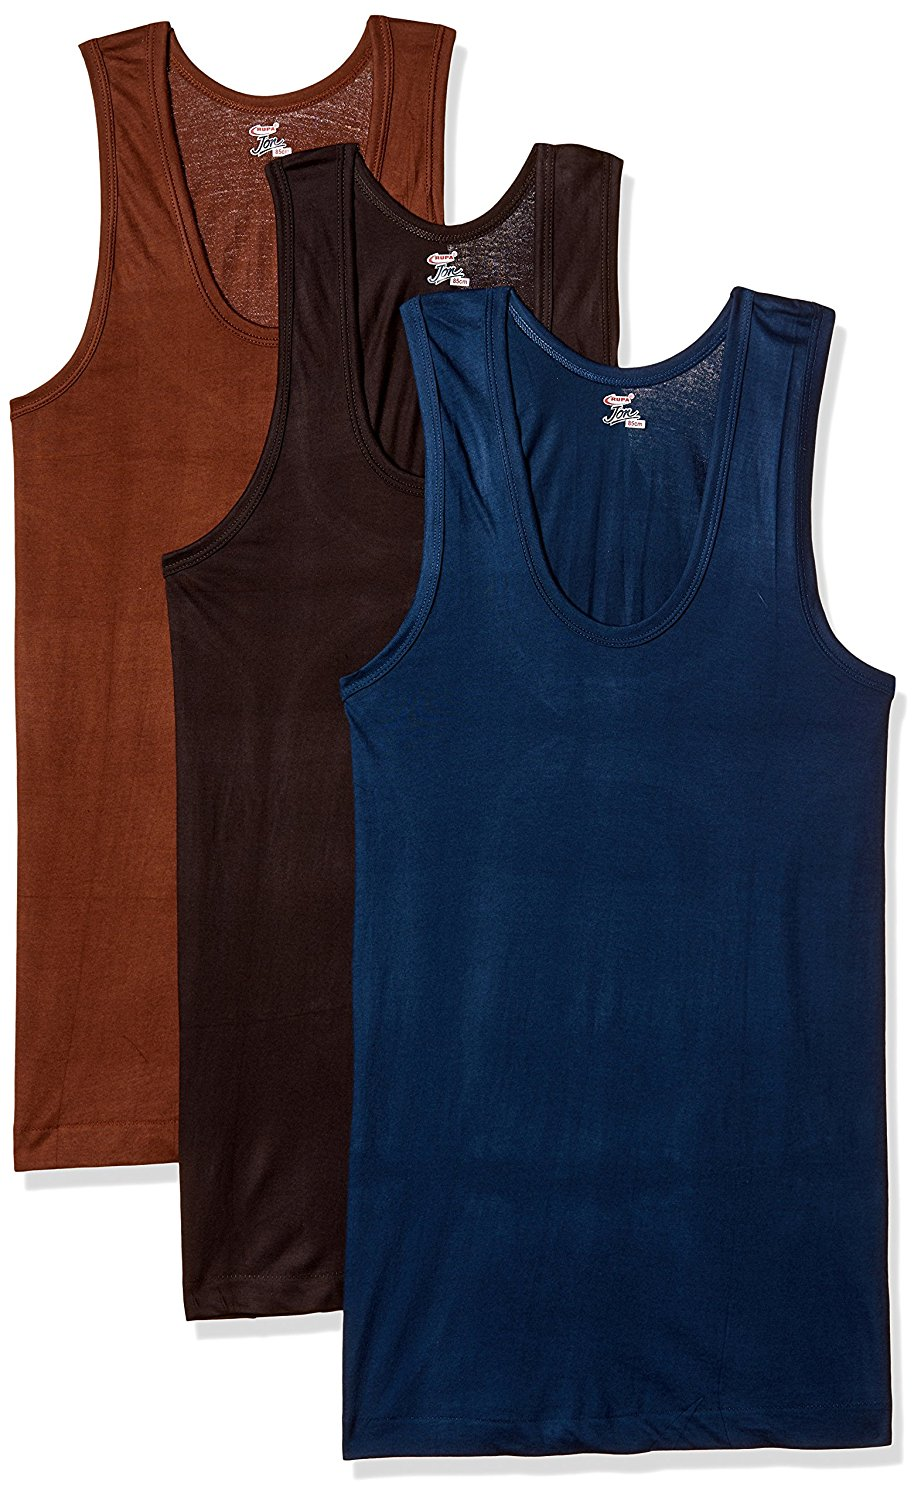 RUPA JON Men's Colour Cotton Vest  Pack of 3   Colors May Vary